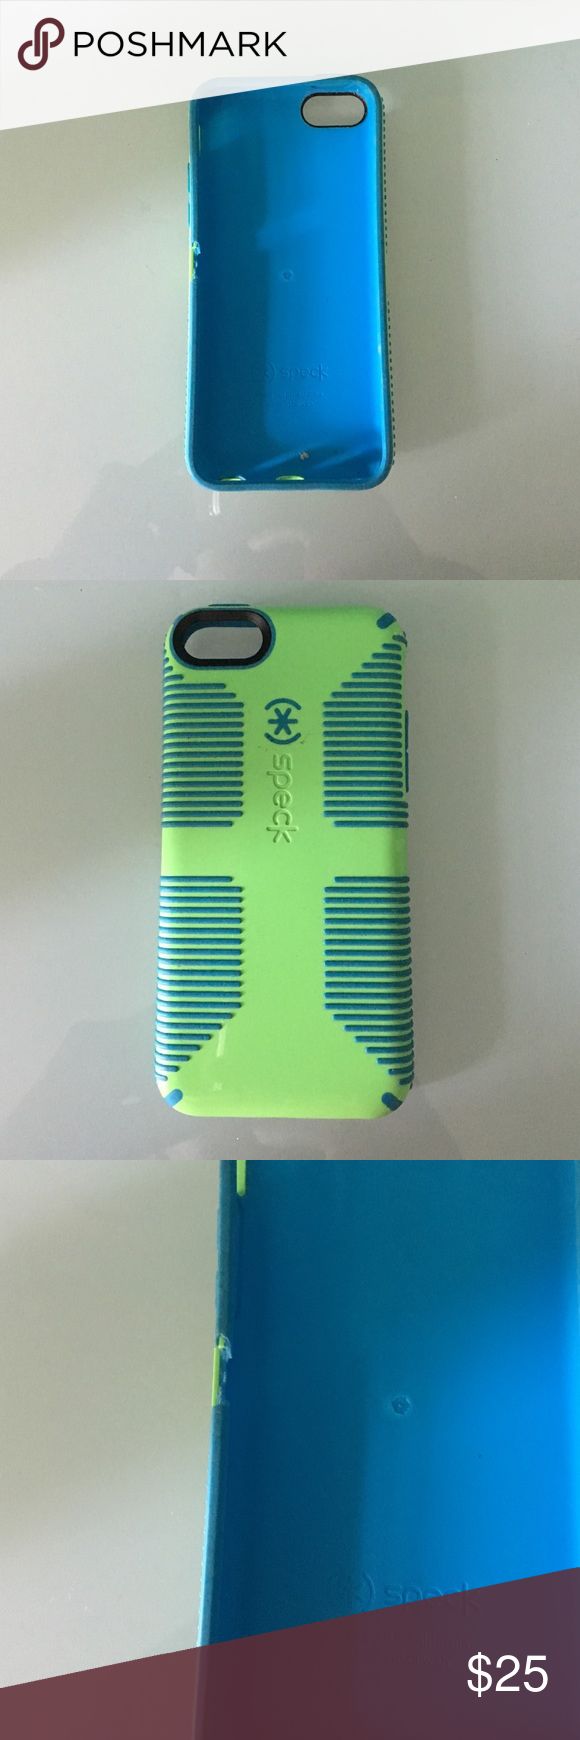 Selling this Iphone 5C speck grip case on Poshmark! My username is: claracathryn. #shopmycloset #poshmark #fashion #shopping #style #forsale #speck #Other